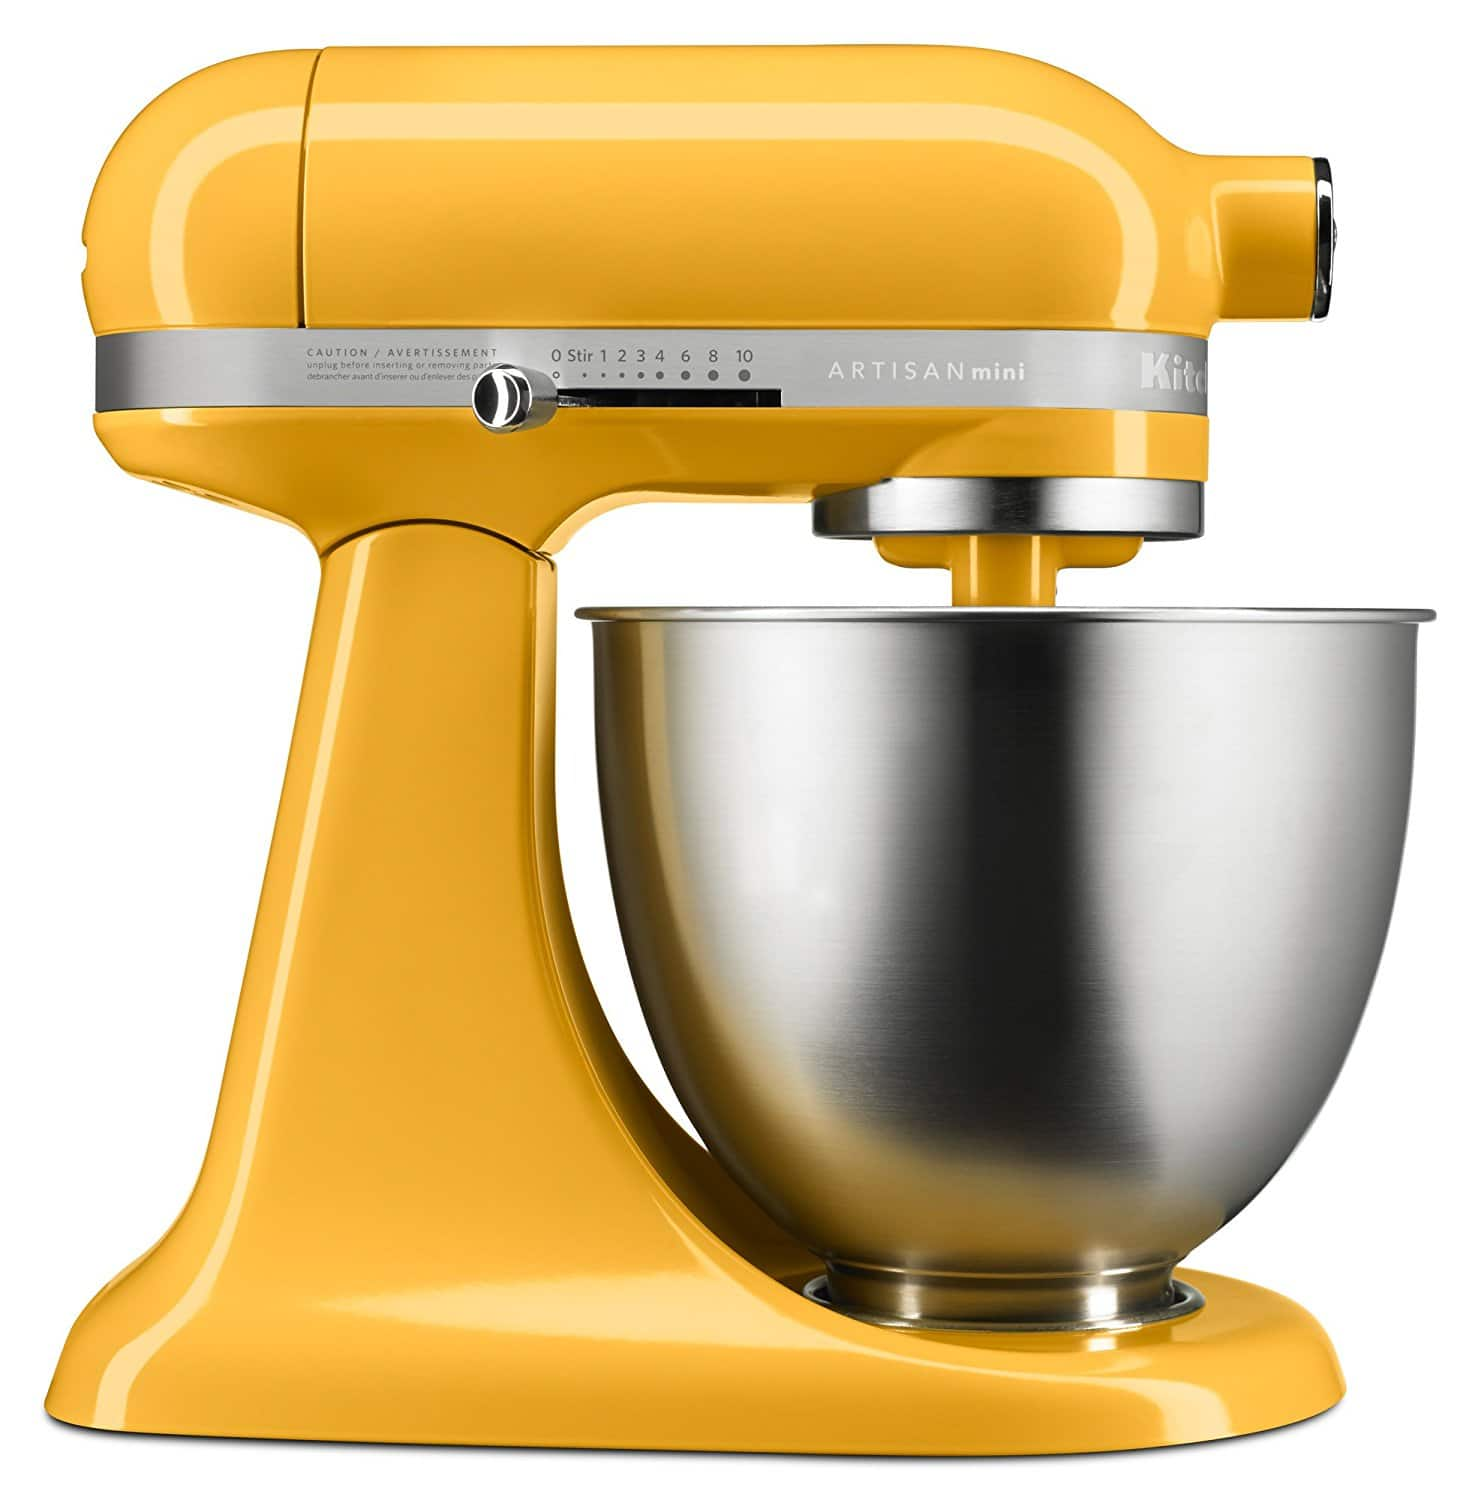 KitchenAid Artisan Mini Tilt-Head Stand Mixer, 3.5 qt. (Color: Orange Sorbet) $114.99 (After $60 MIR)